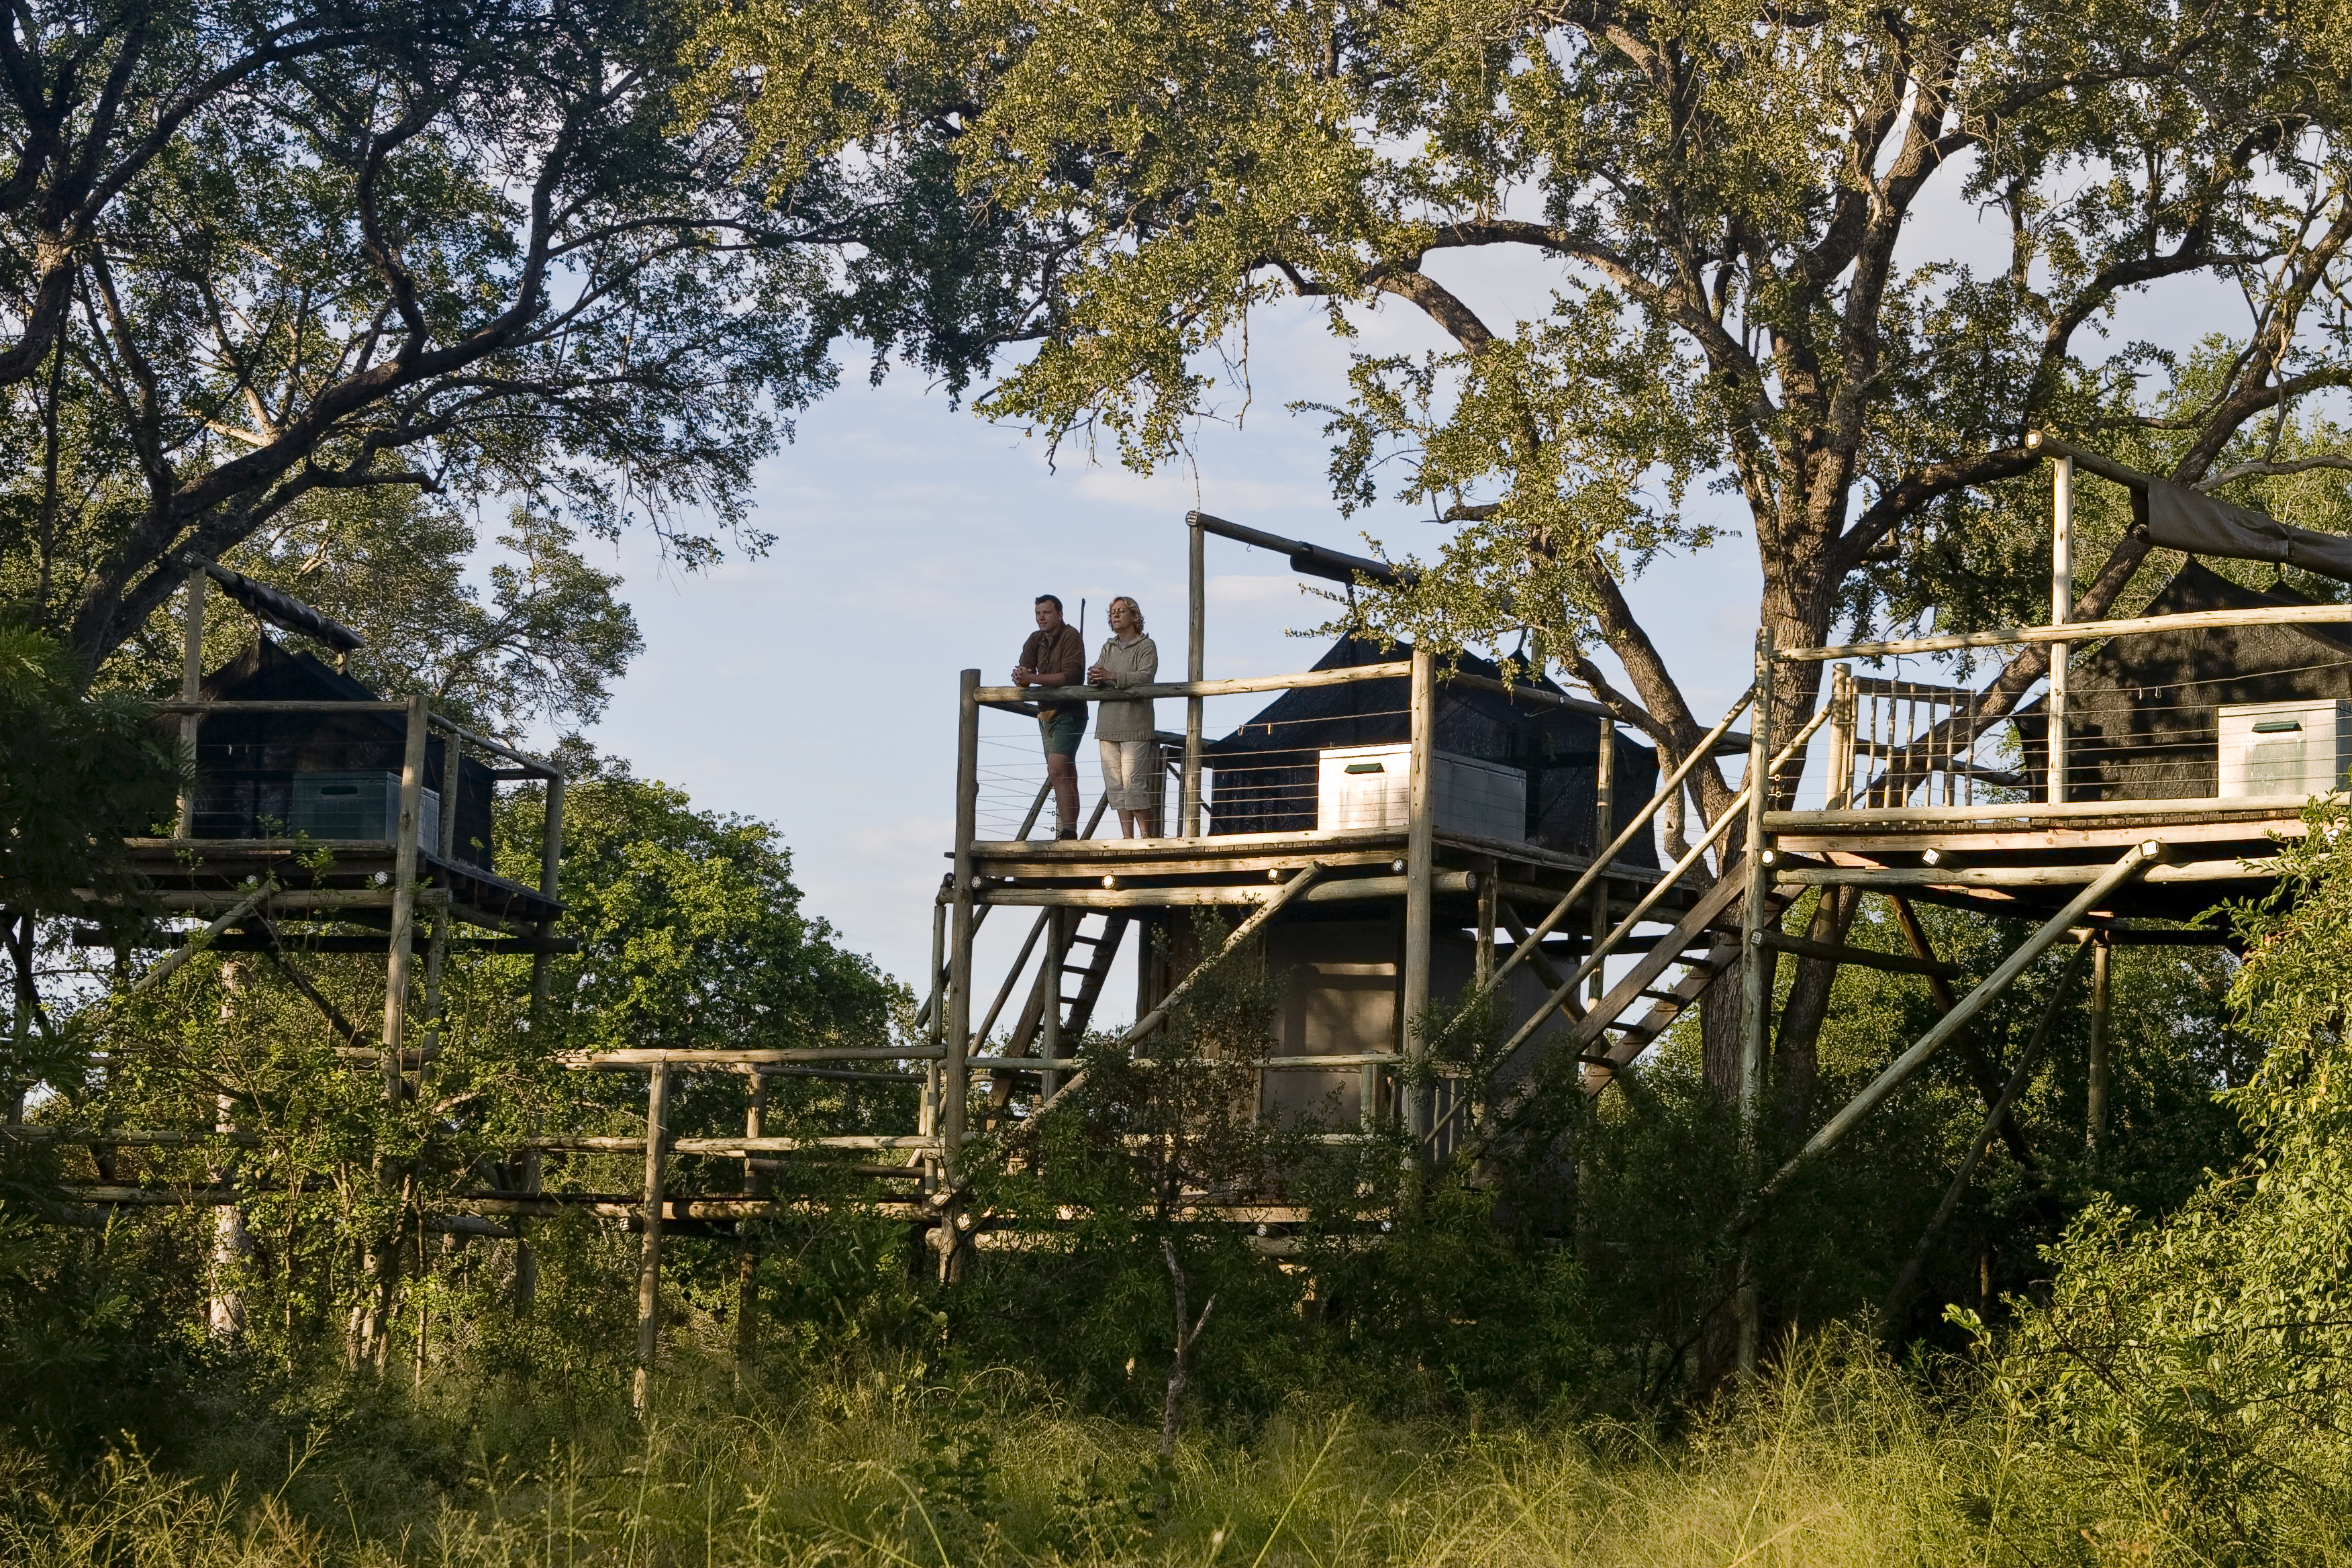 Nikki also manages Plains Tented Camp and Rhino Walking Safaris. She loves to retreat on these sleepout decks to reconnect with nature.